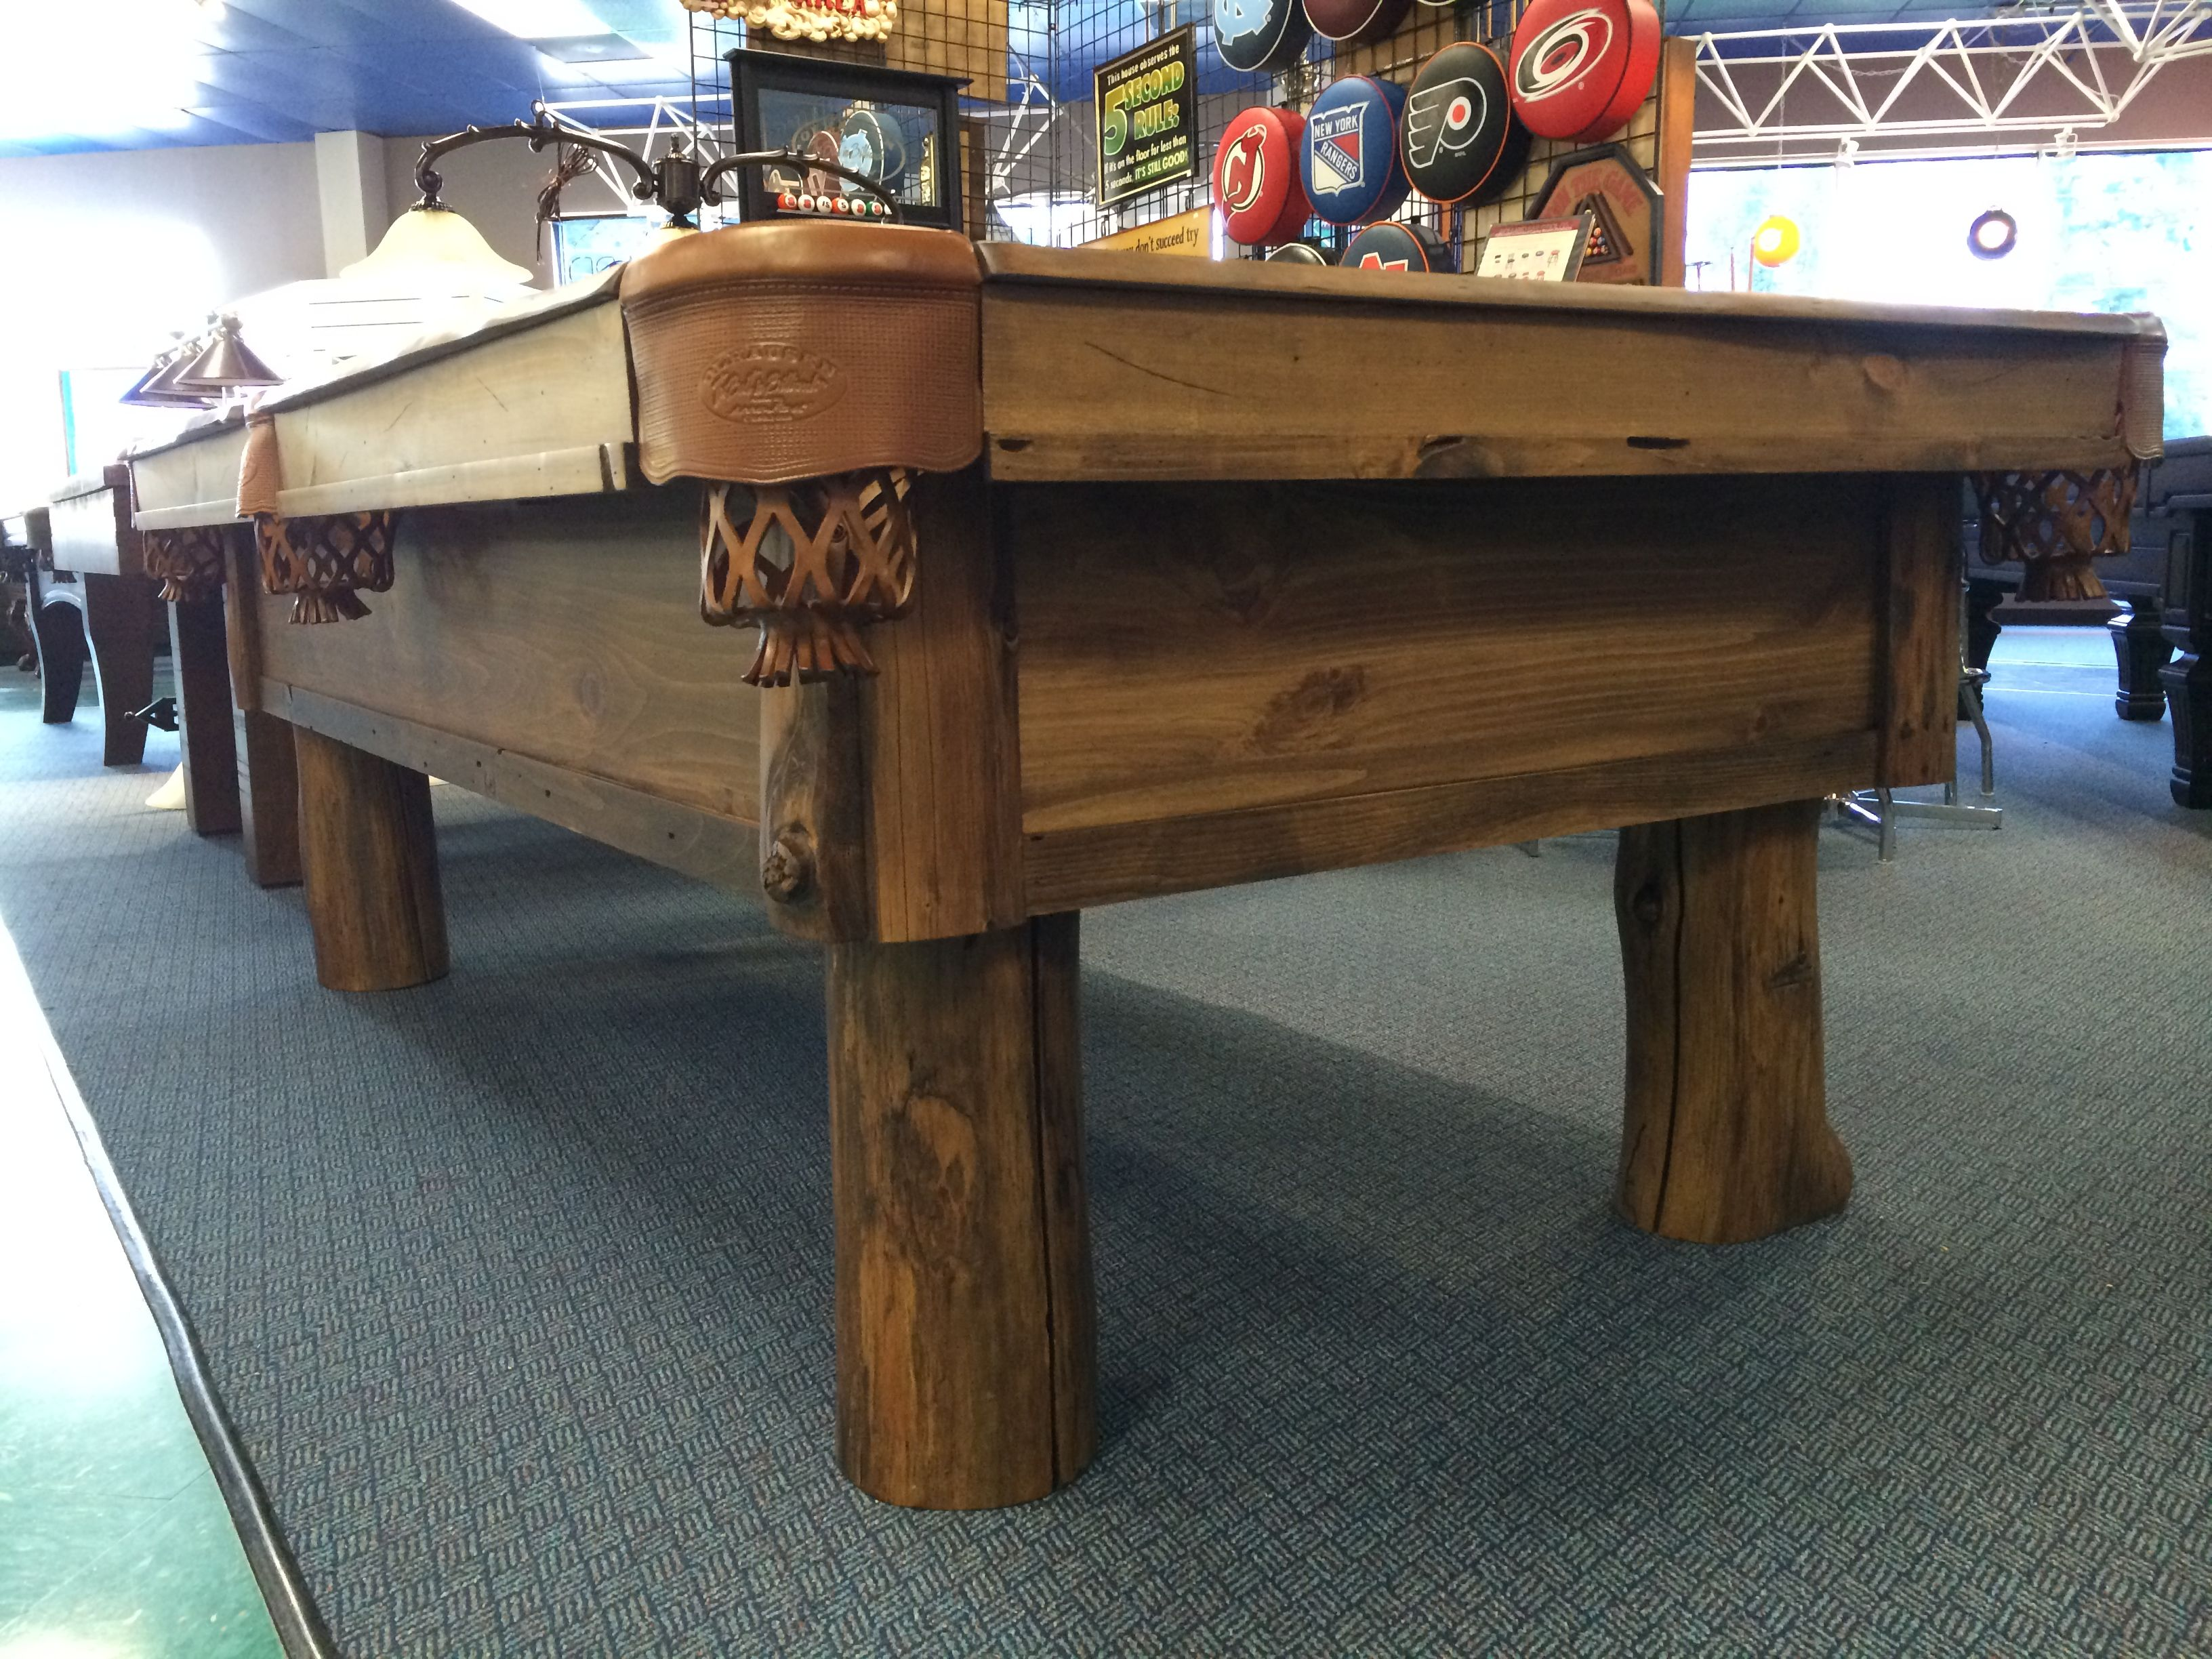 Hereu0027s The New 8u0027 Olhausen Pinehaven On Display At Atlantic Spas And  Billiards In Raleigh, NC #Olhausen